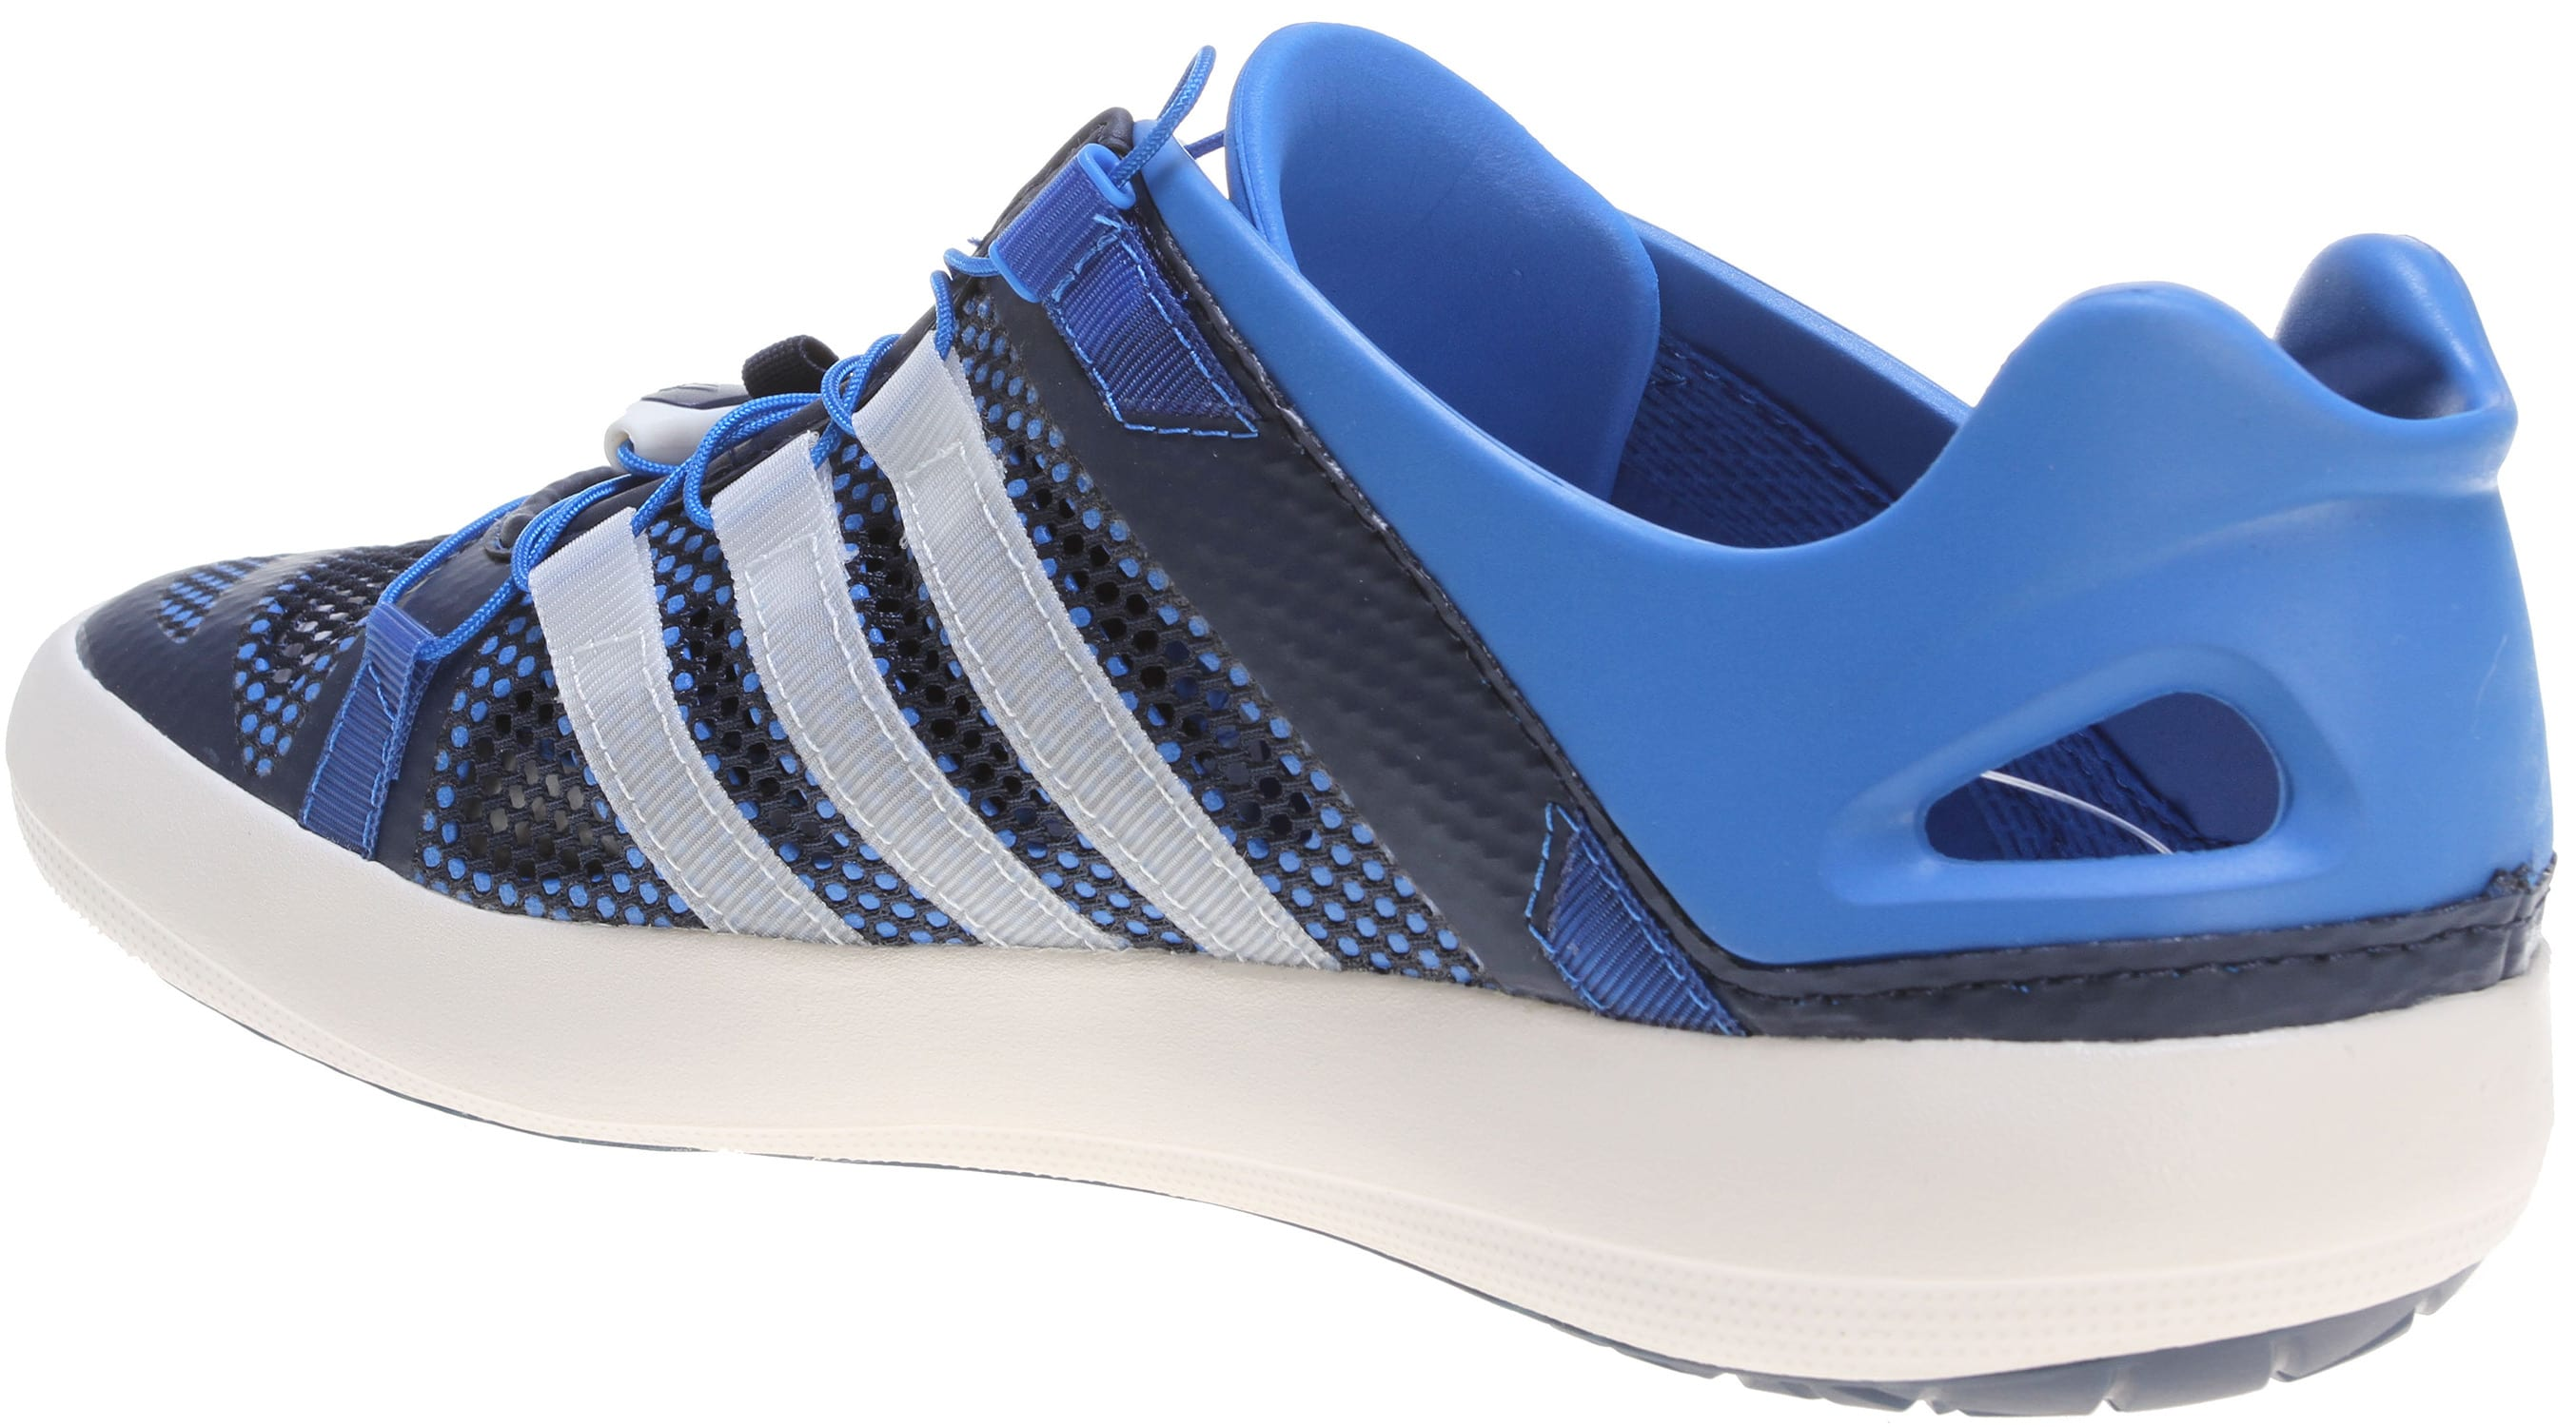 online retailer a6fcd f4019 ... cheap adidas climacool boat breeze water shoes thumbnail 3 7ea1d 0faaf